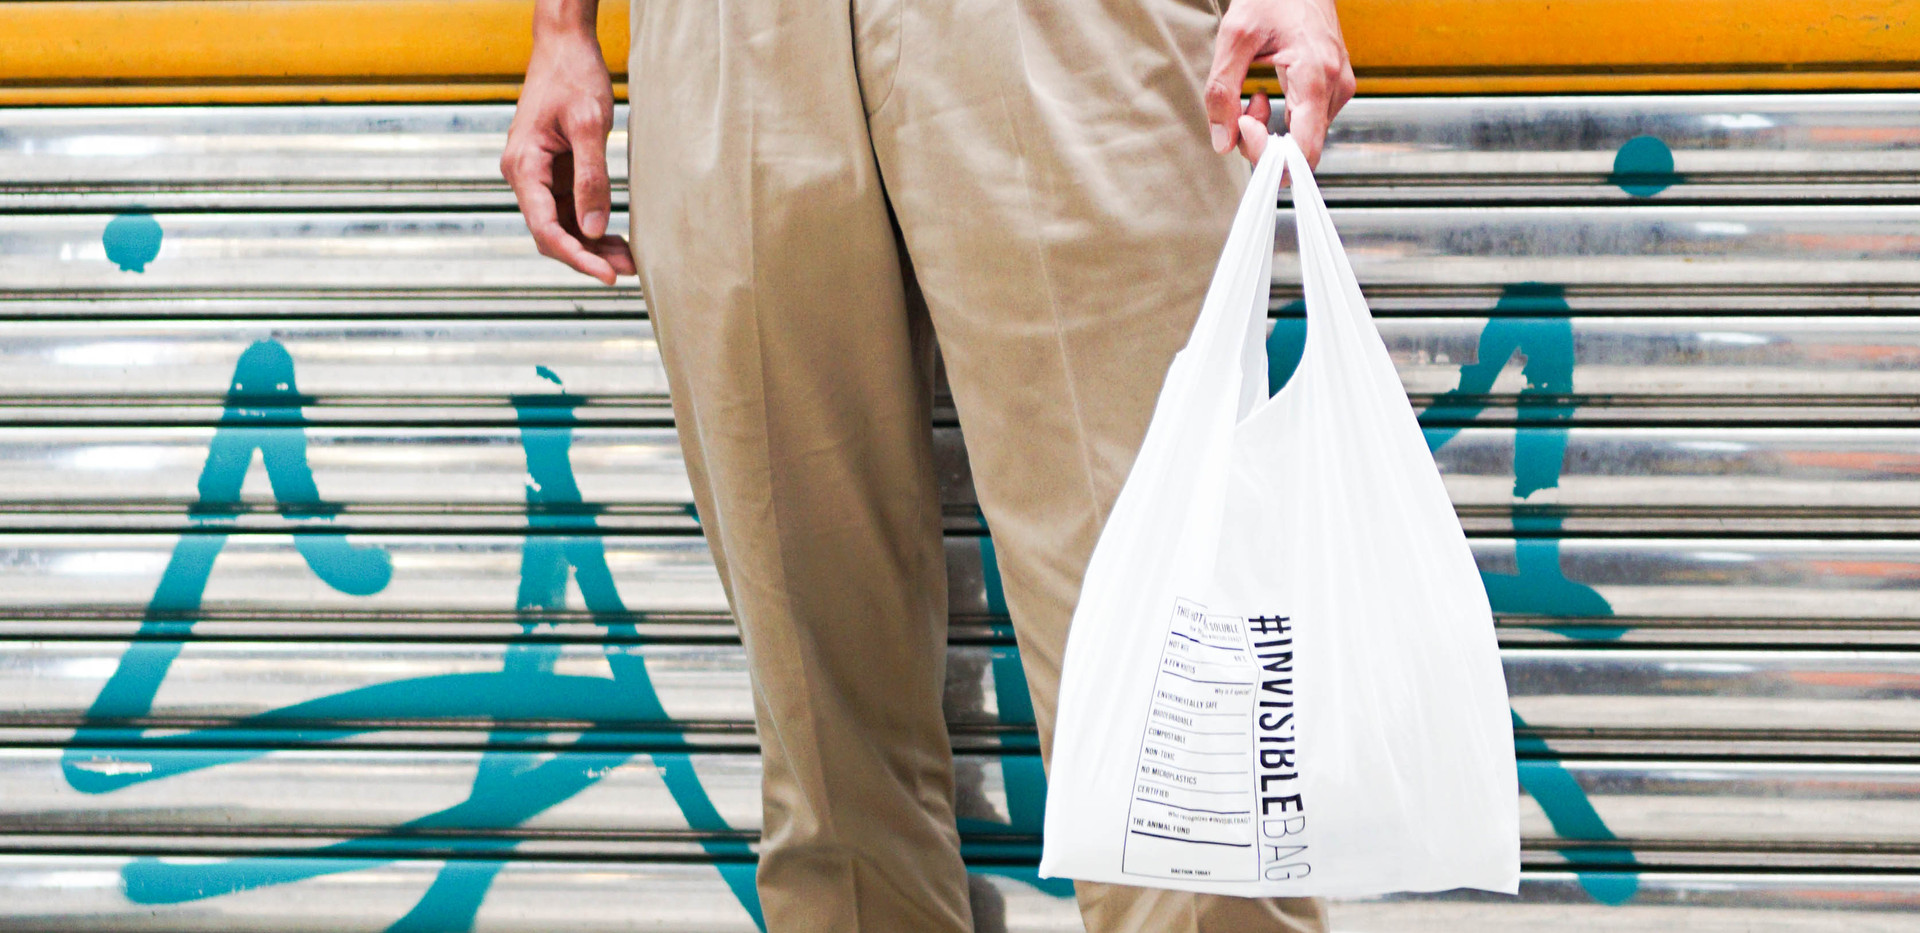 #INVISIBLEBAG   Sustainable Packaging   Distinctive Action